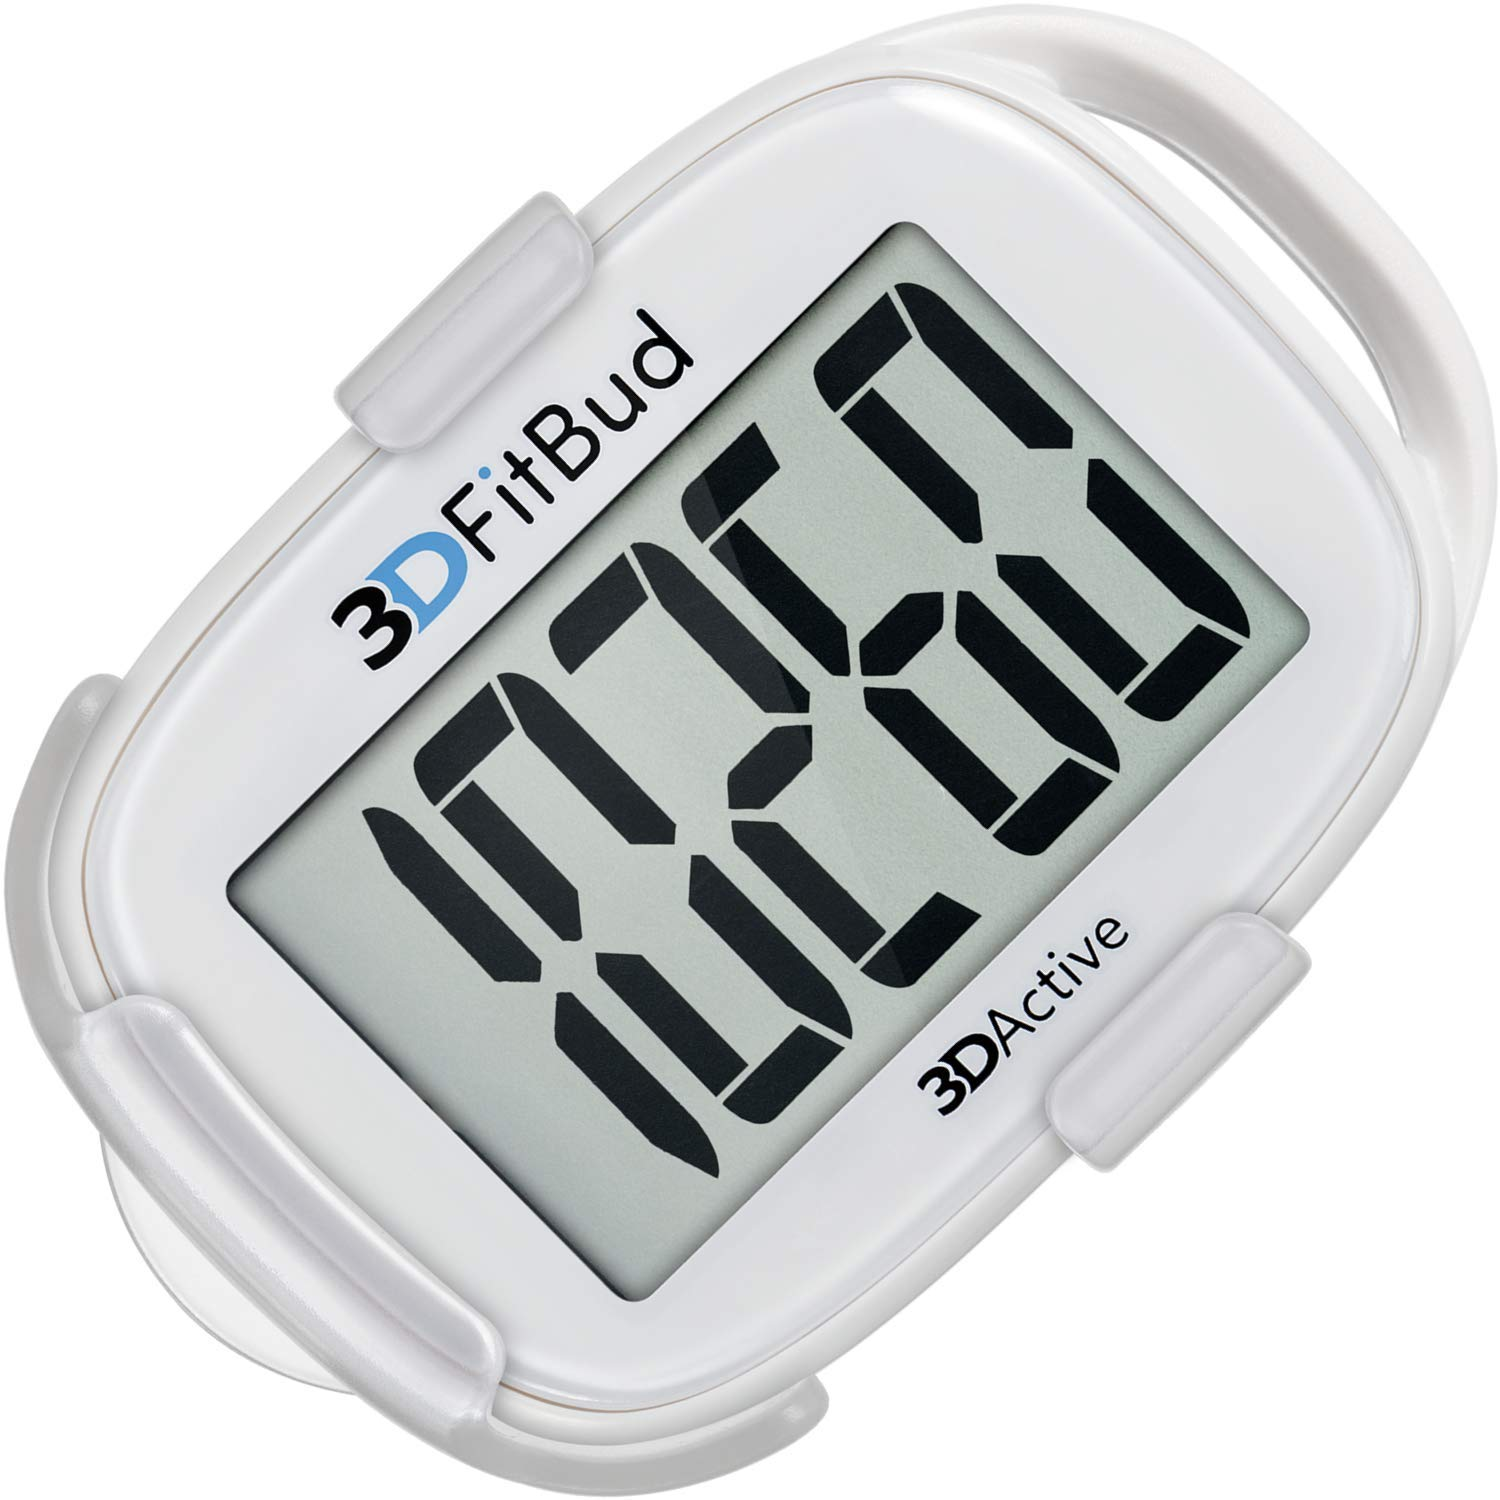 Buy 3DFitBud Simple Step Counter Walking 3D Pedometer with Clip and  Lanyard, A420S Online at Low Prices in India - Amazon.in